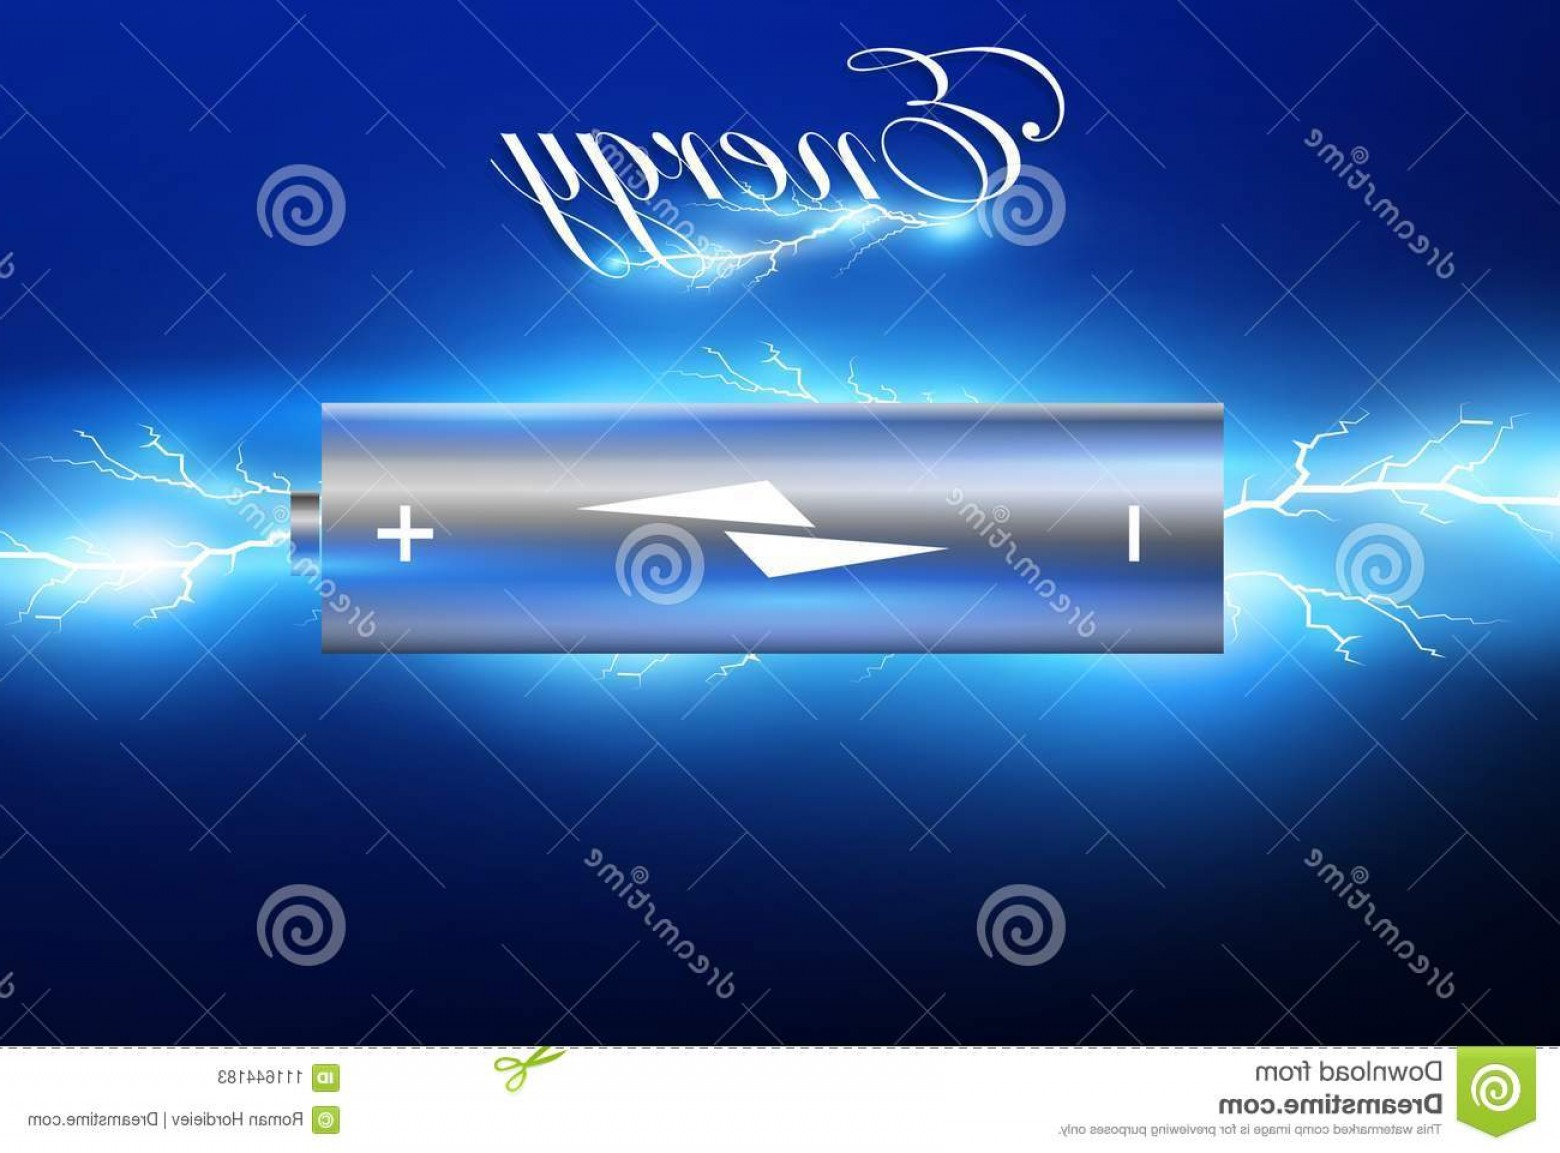 Battery Electricity Vector Images: Batteries Electric Charge Pulse Lightning Electricity Vector Illustration Batteries Electric Charge Pulse Lightning Image